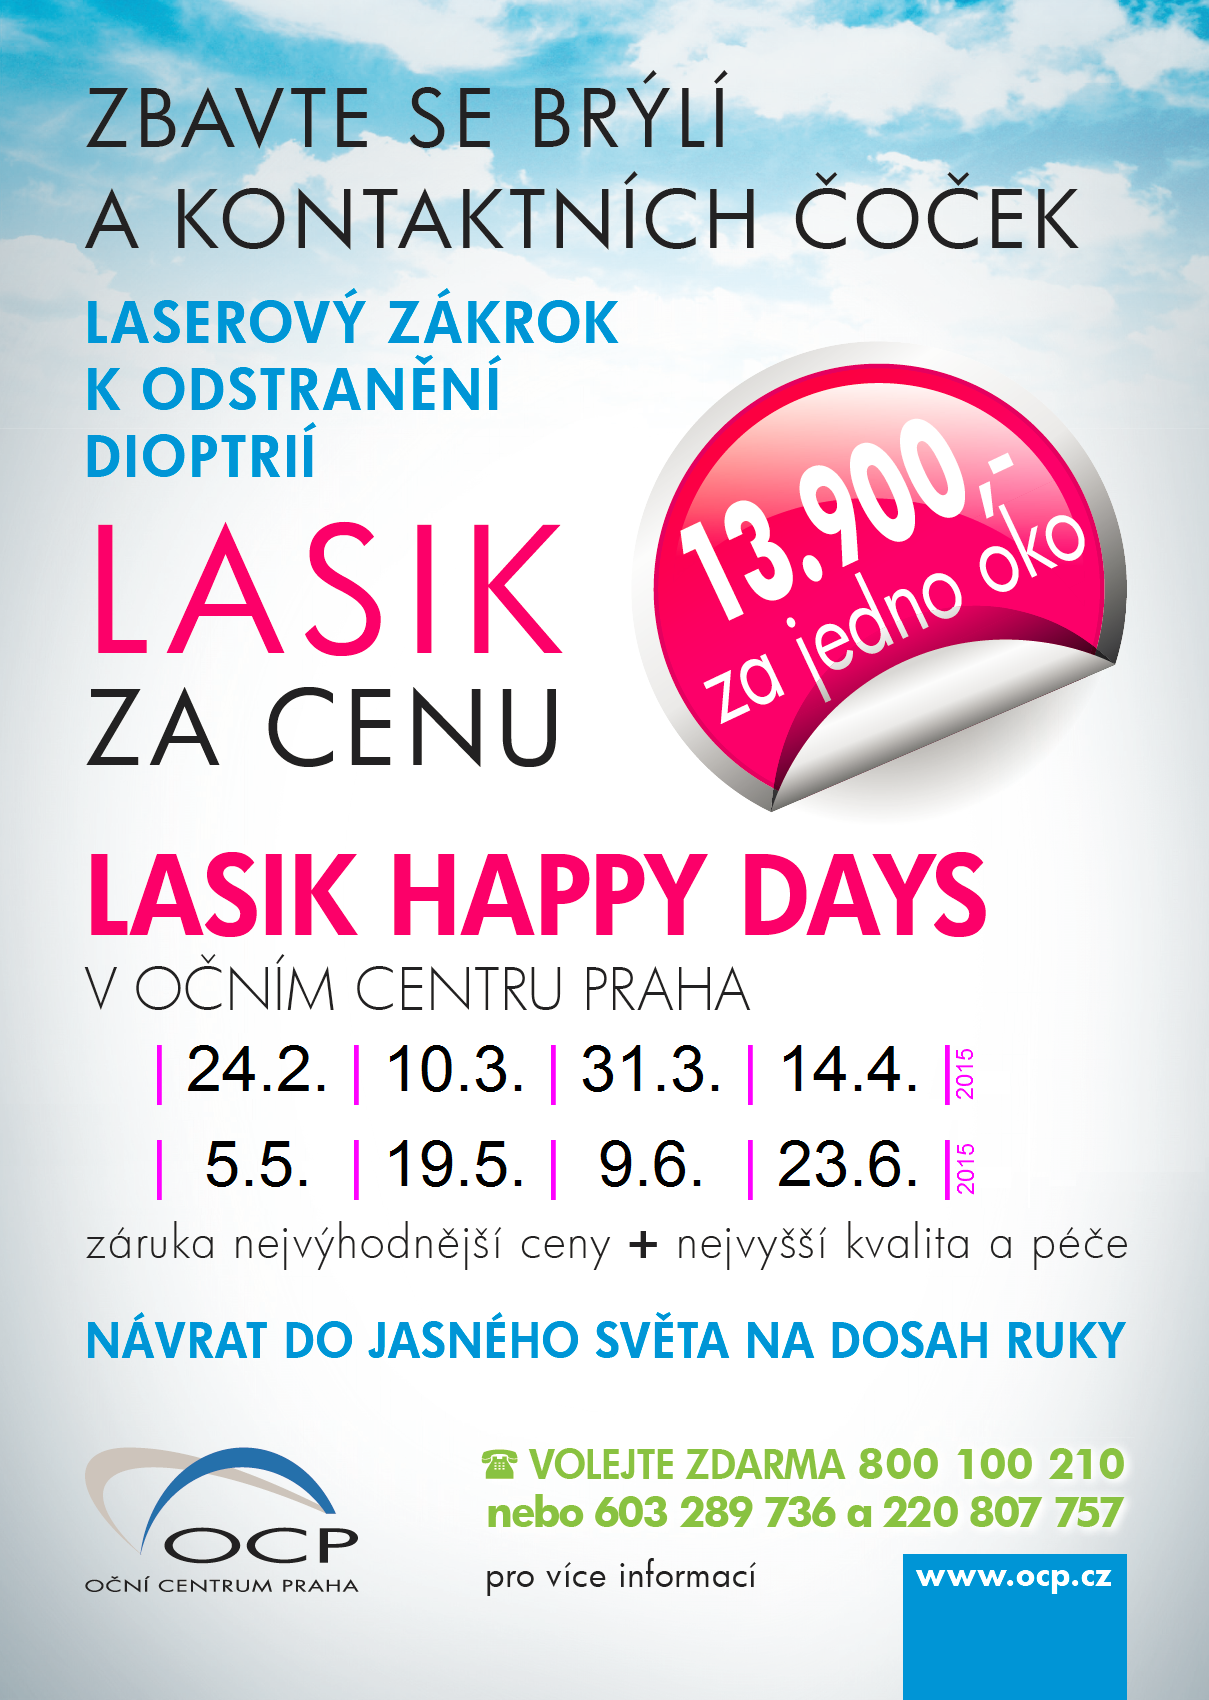 LASIK HAPPY DAYS POKRAČUJÍ